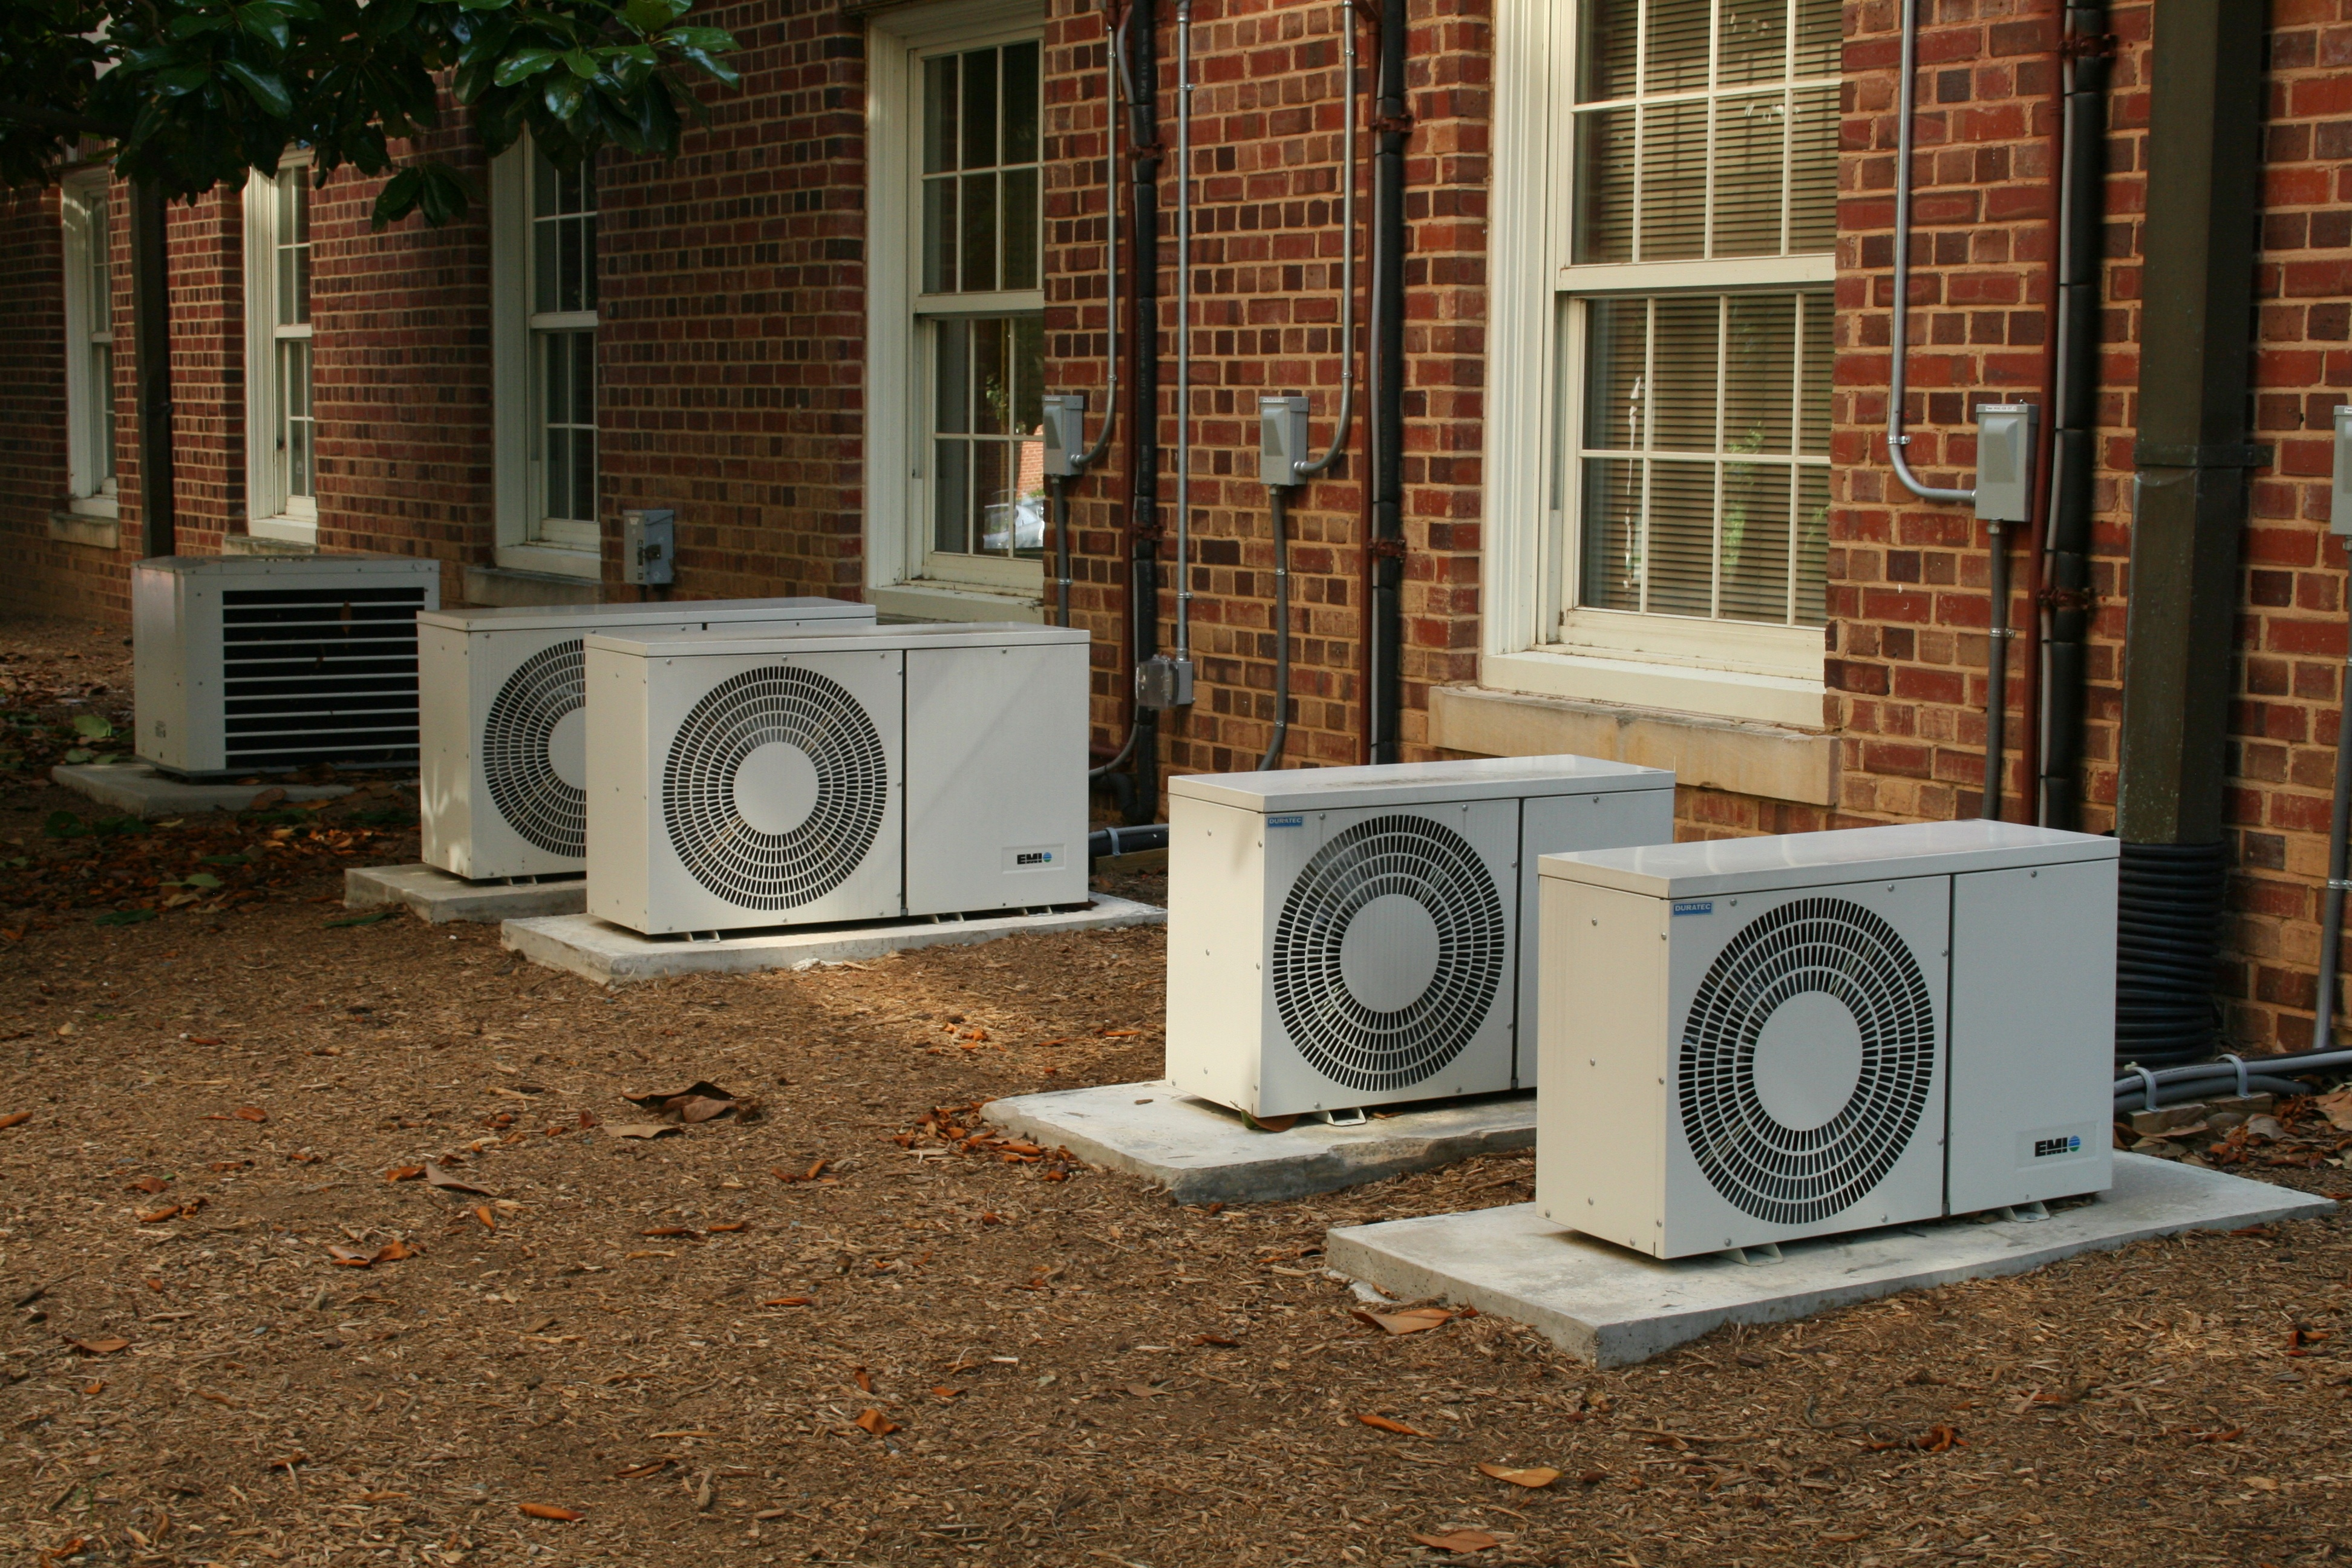 Air conditioning is the number one way we can reduce carbon